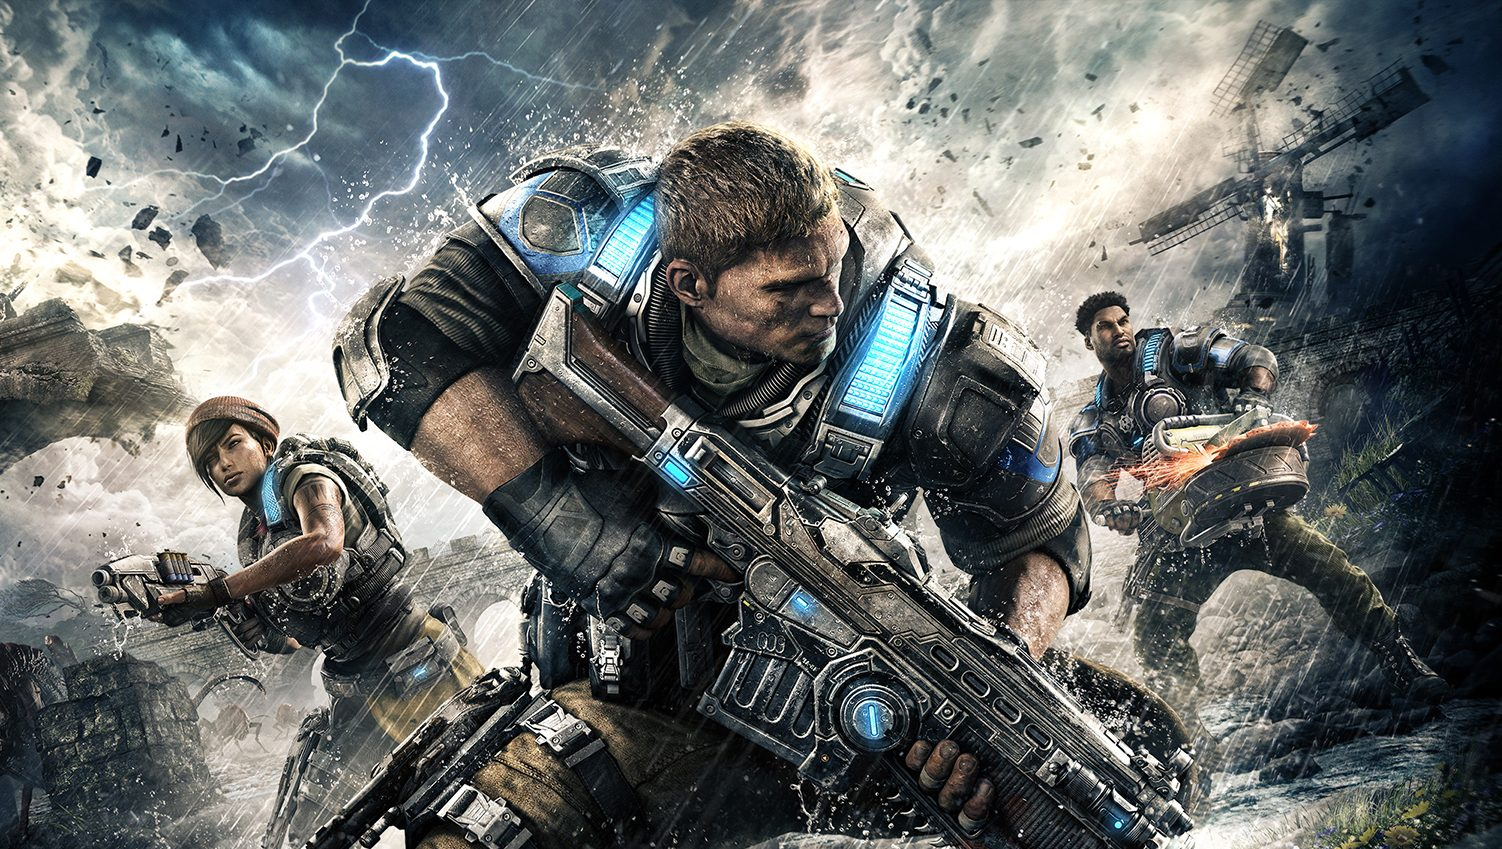 Couverture du jeu Gears of war 4